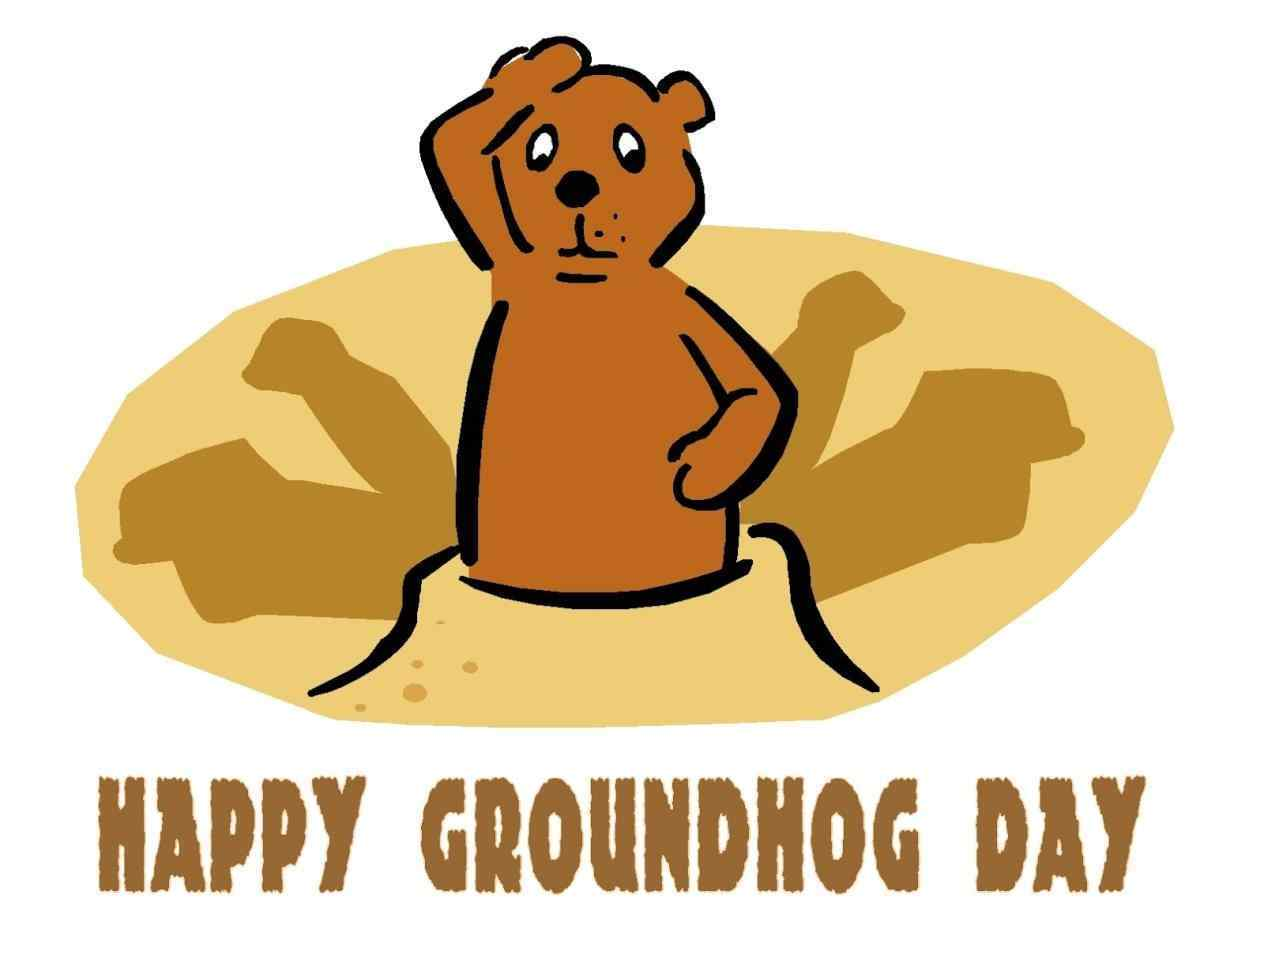 1264x970 Groundhog Day Clip Art Free Your Meme Source